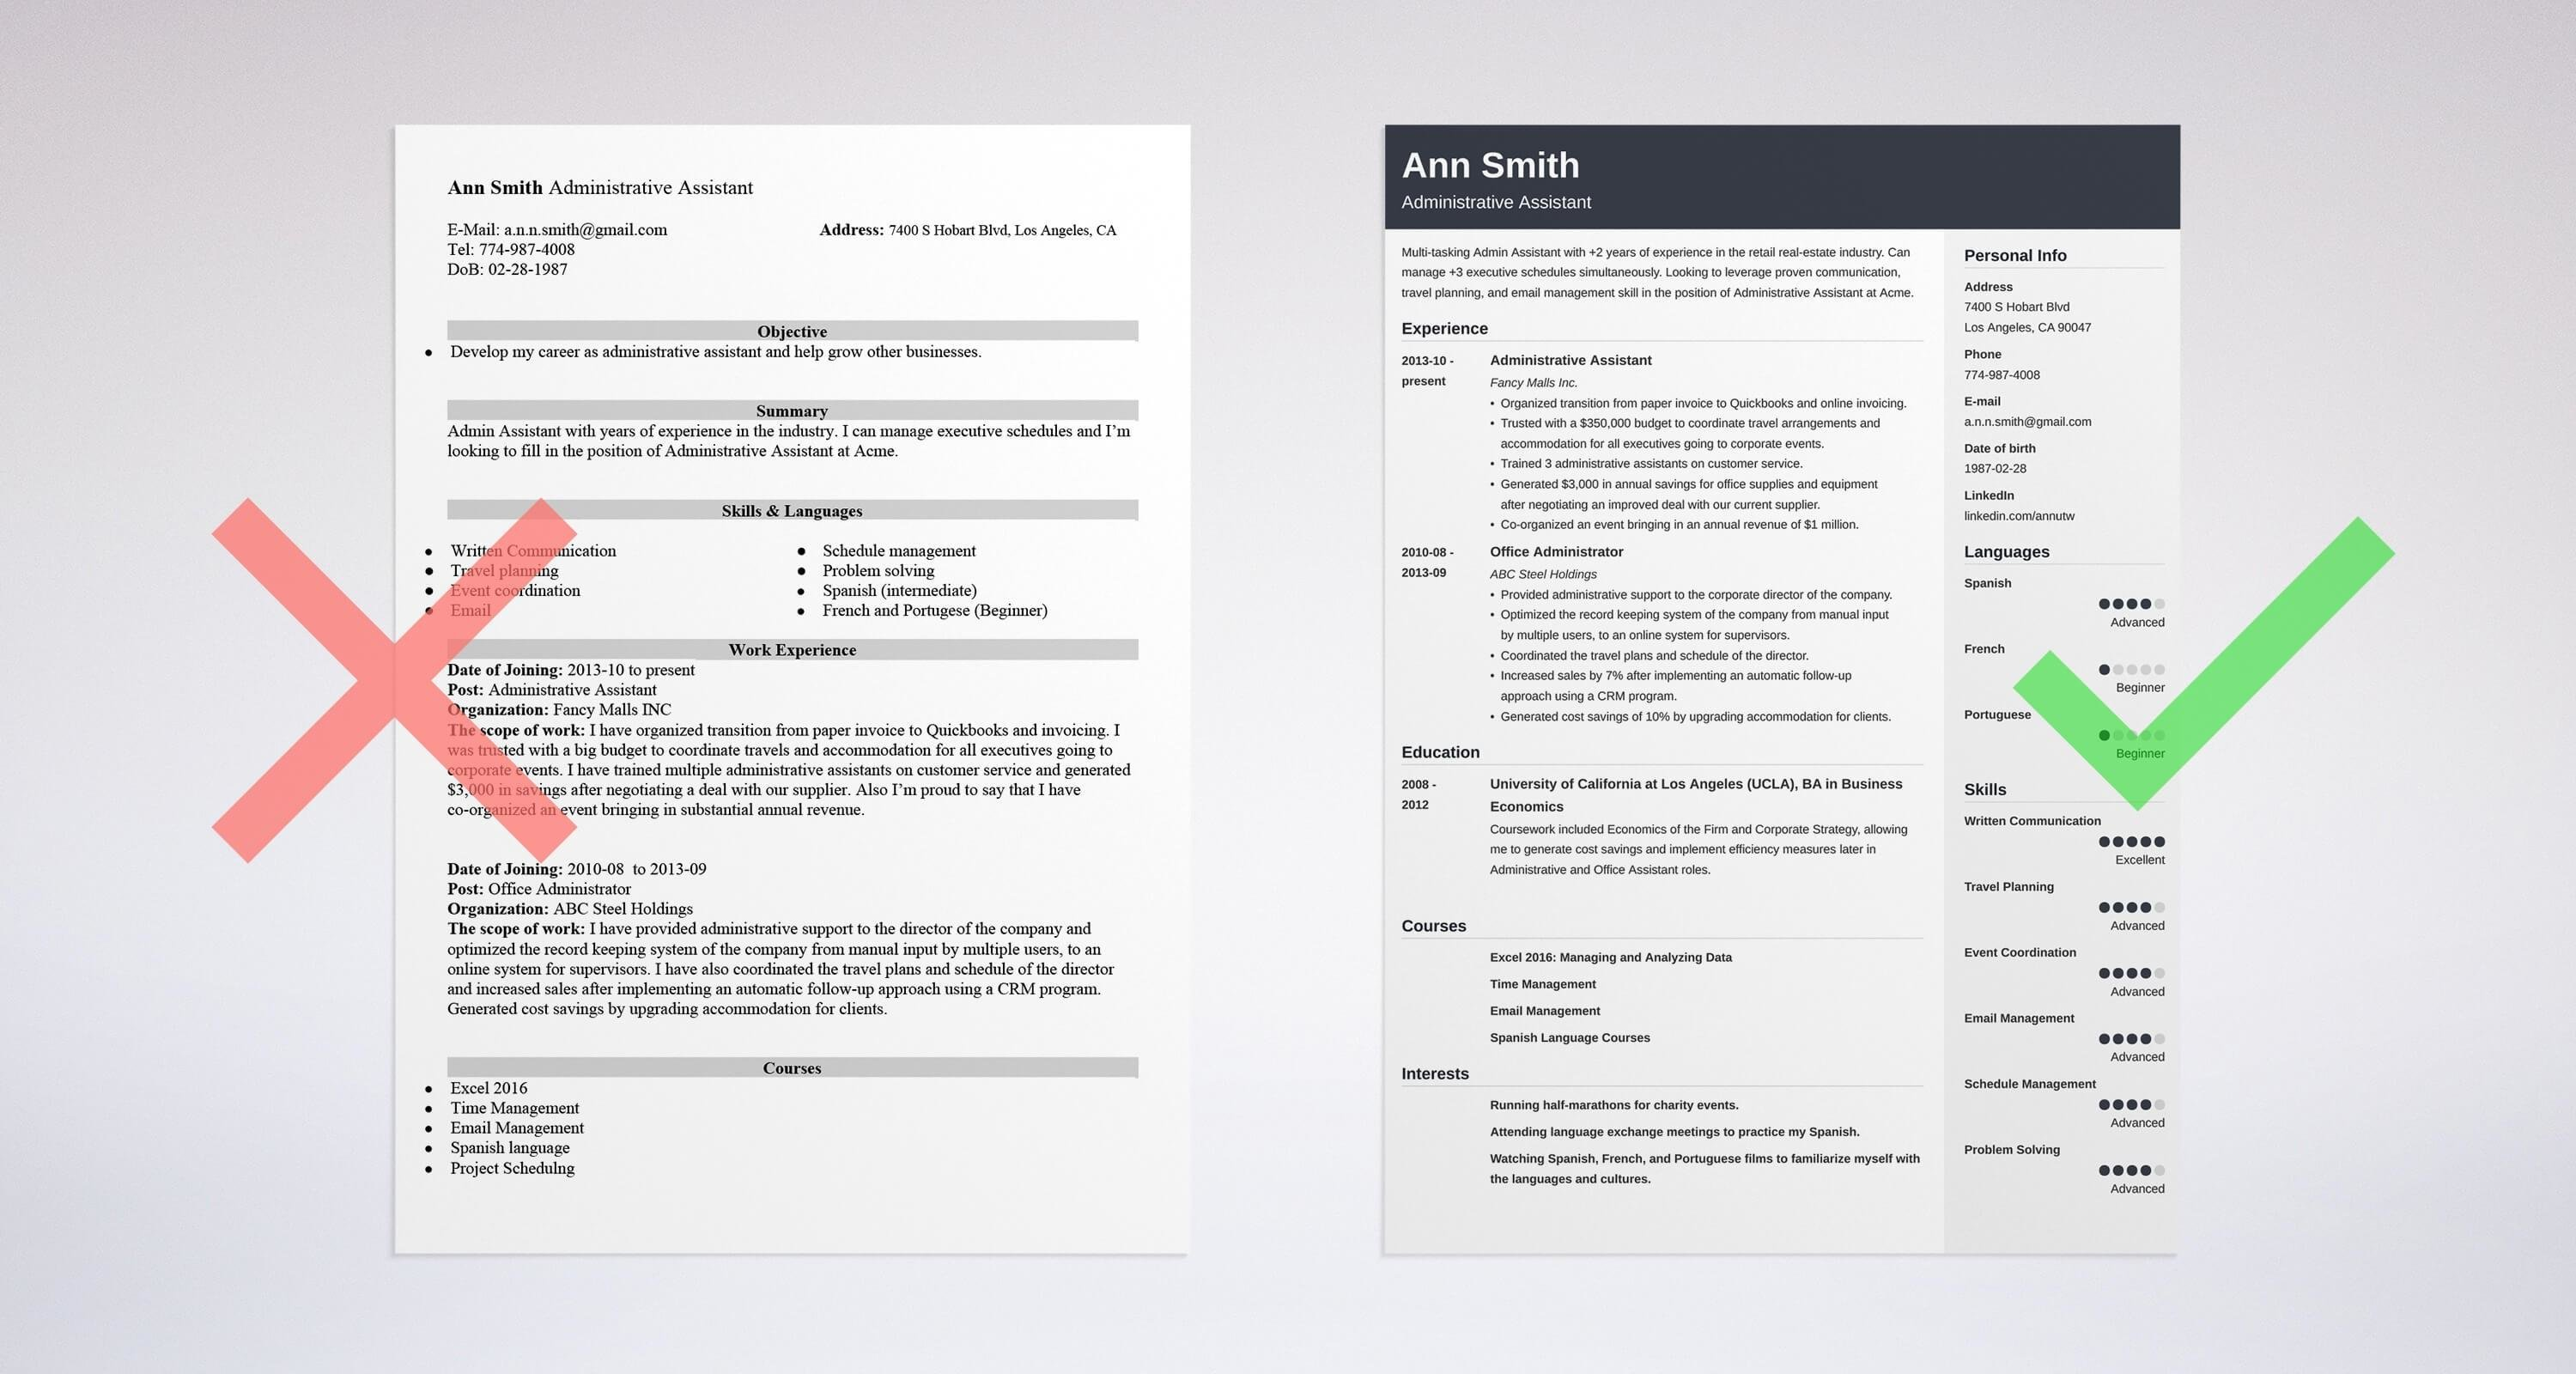 Administrative Assistant Resume Sample & Guide (20+ Examples)